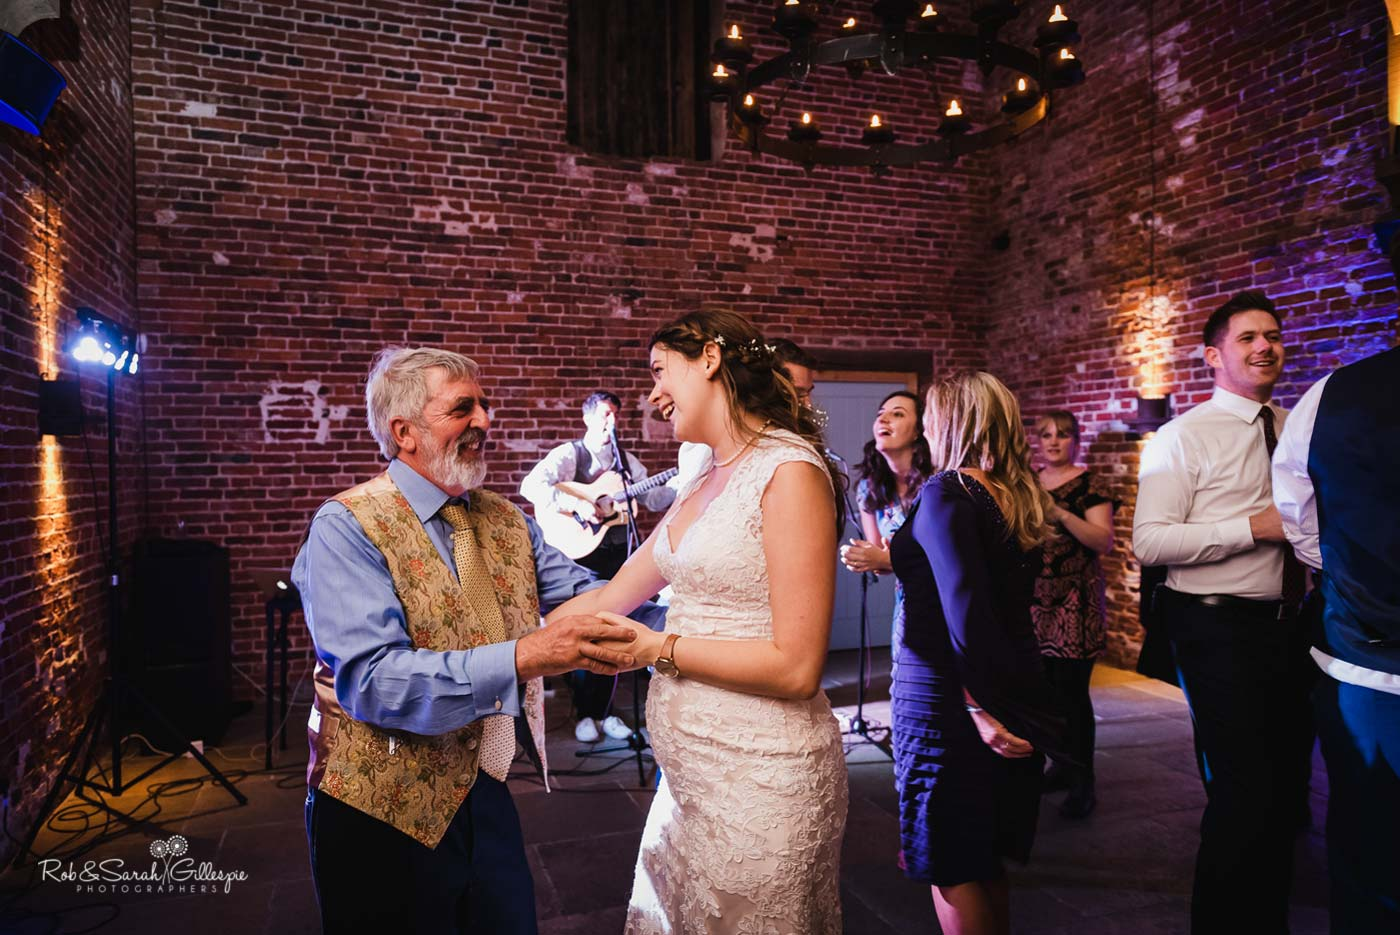 Wedding guests dancing at Hazel Gap Barn